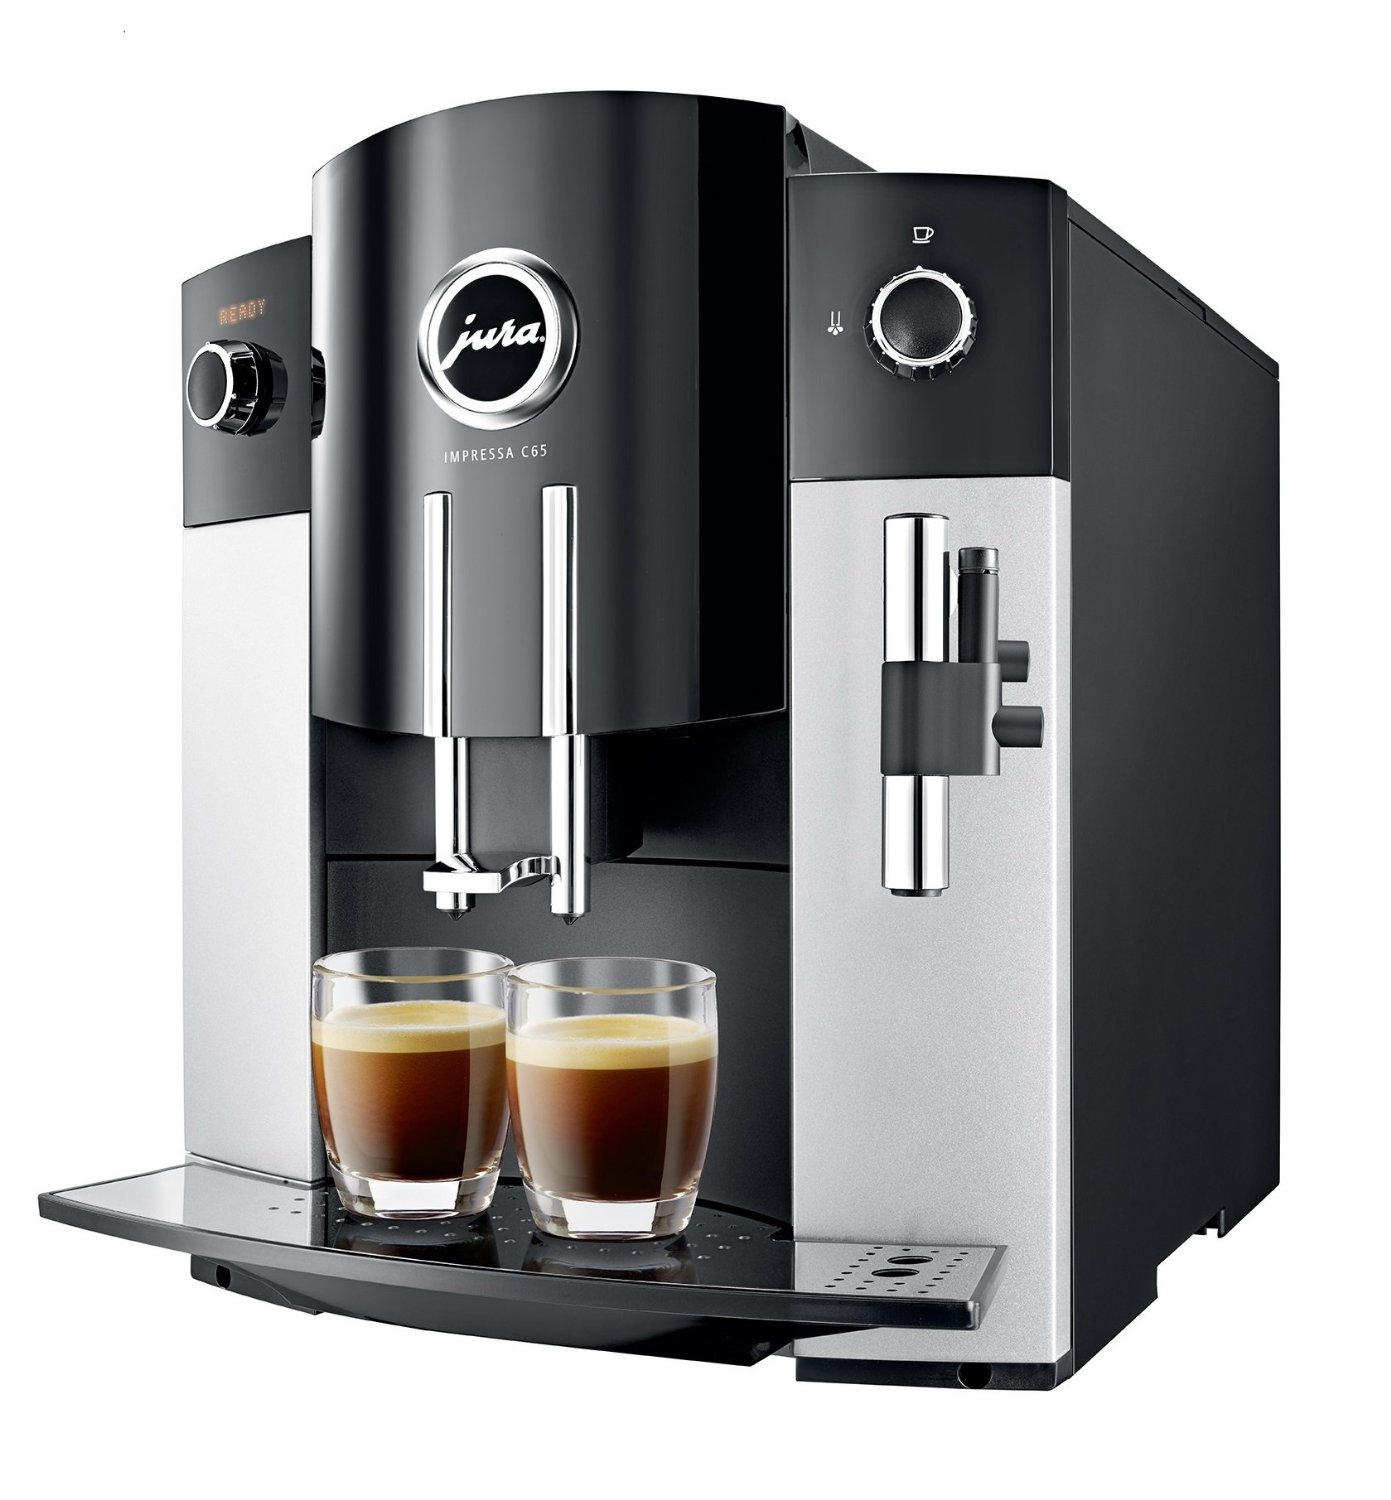 Best Coffee Maker For Home 2016 : 10 Best Home Coffee Makers 2017 - Top Rated Coffee Machines Reviews